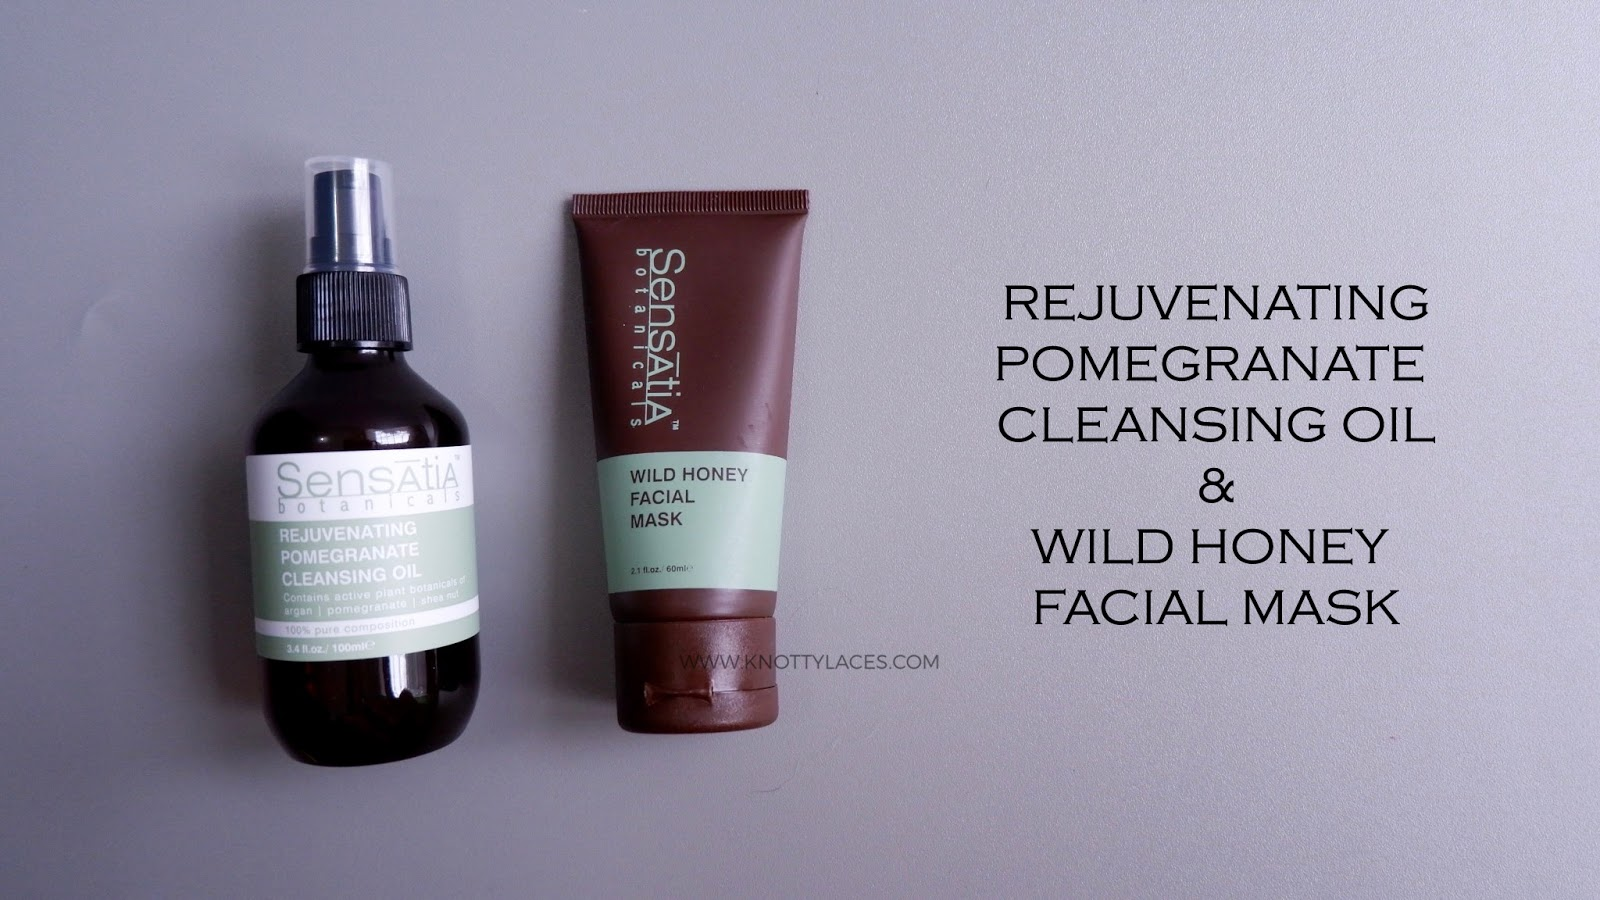 Sensatia Pomegranate Cleansing Oil And New Wild Honey Facial Mask Botanicals Aloe Vera Botanical Gel 100 Ml This Time I Get To Try Their Latest Products Which Are Better Formulated Well The Is Not Entirely